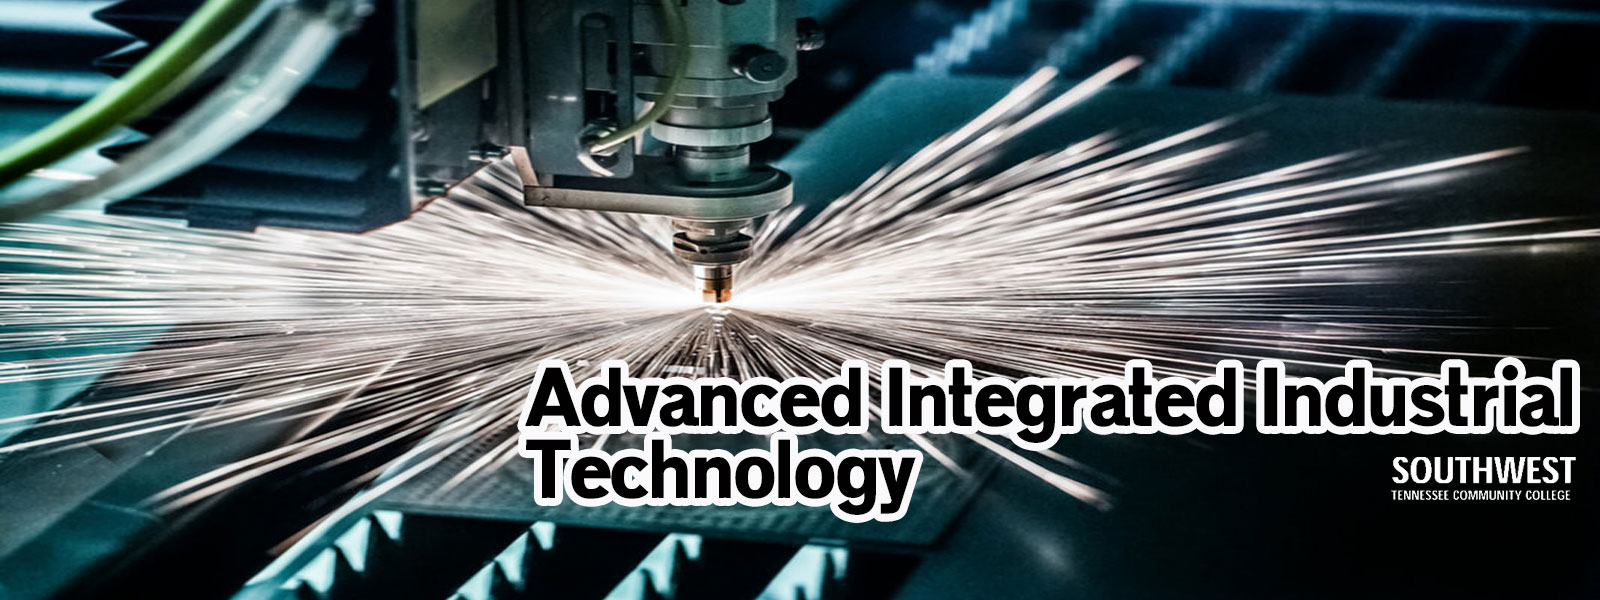 Advanced Integrated Industrial Technology